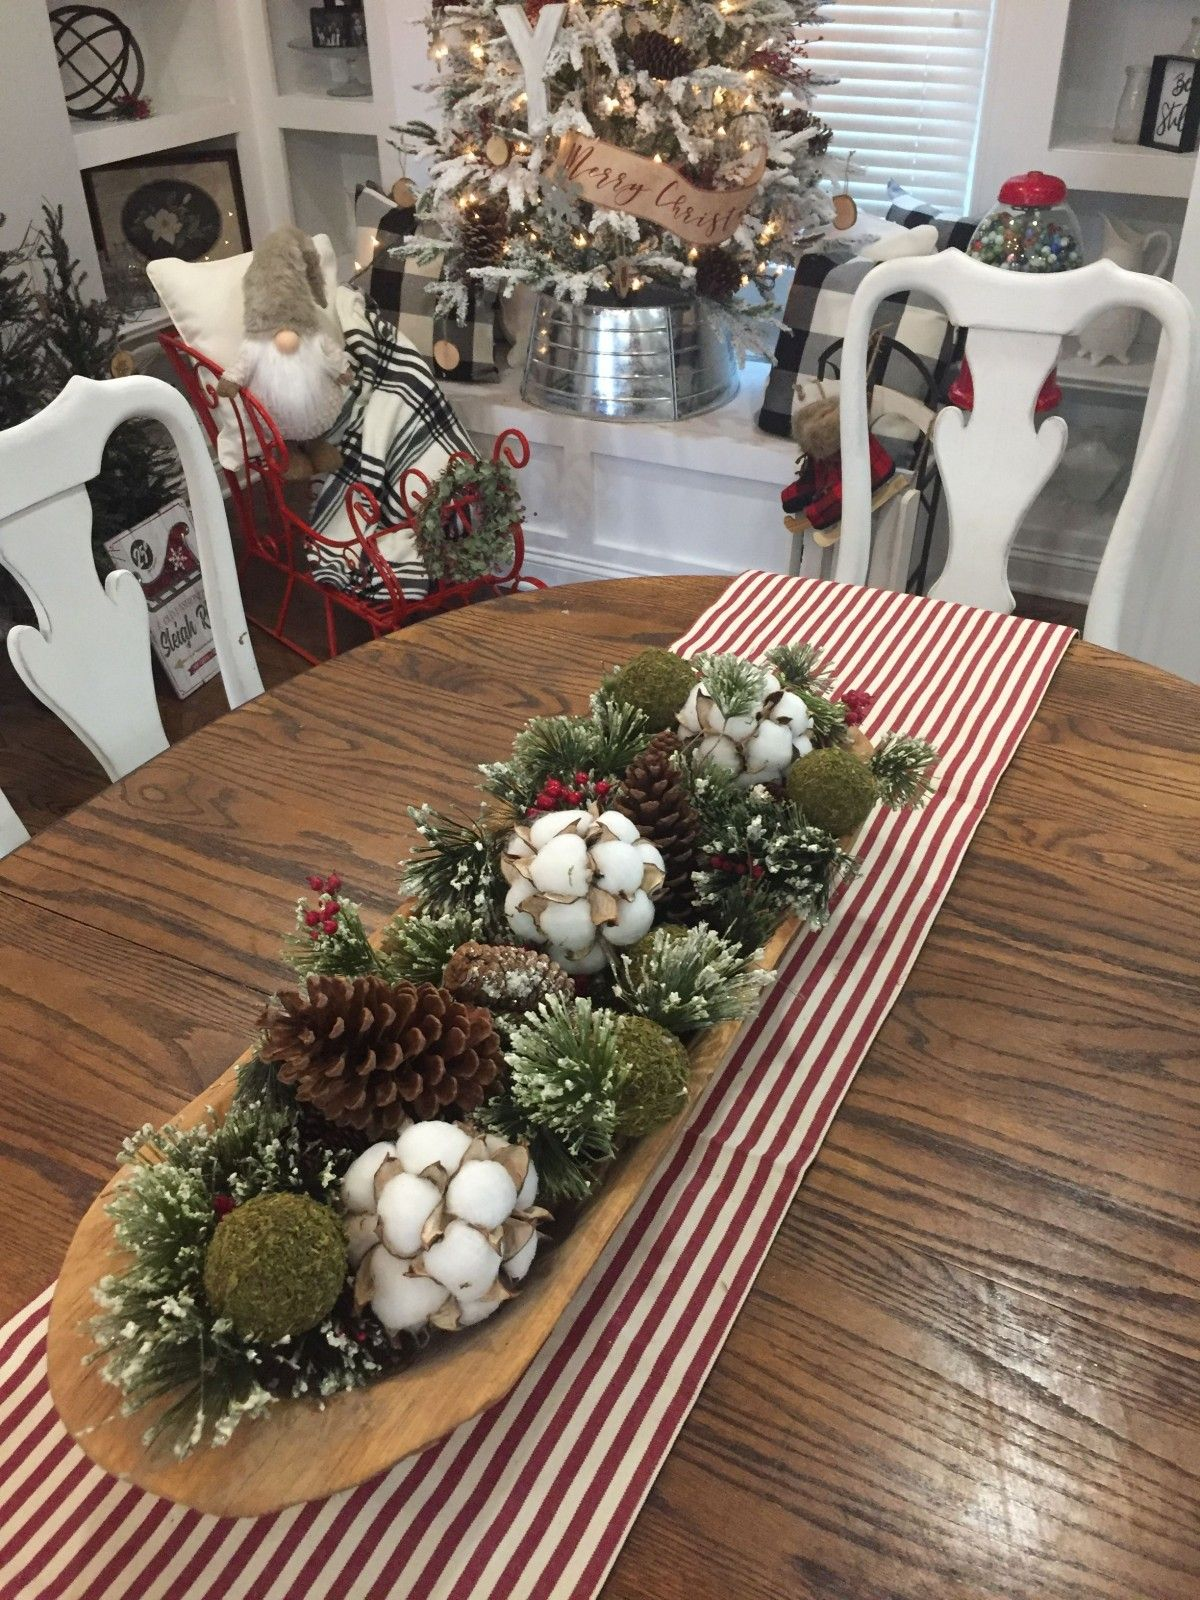 Dining Table Centerpiece Ideas Formal And Unique Table Centerpiece Christmas Dining Room Table Christmas Bowl Decorations Christmas Table Centerpieces